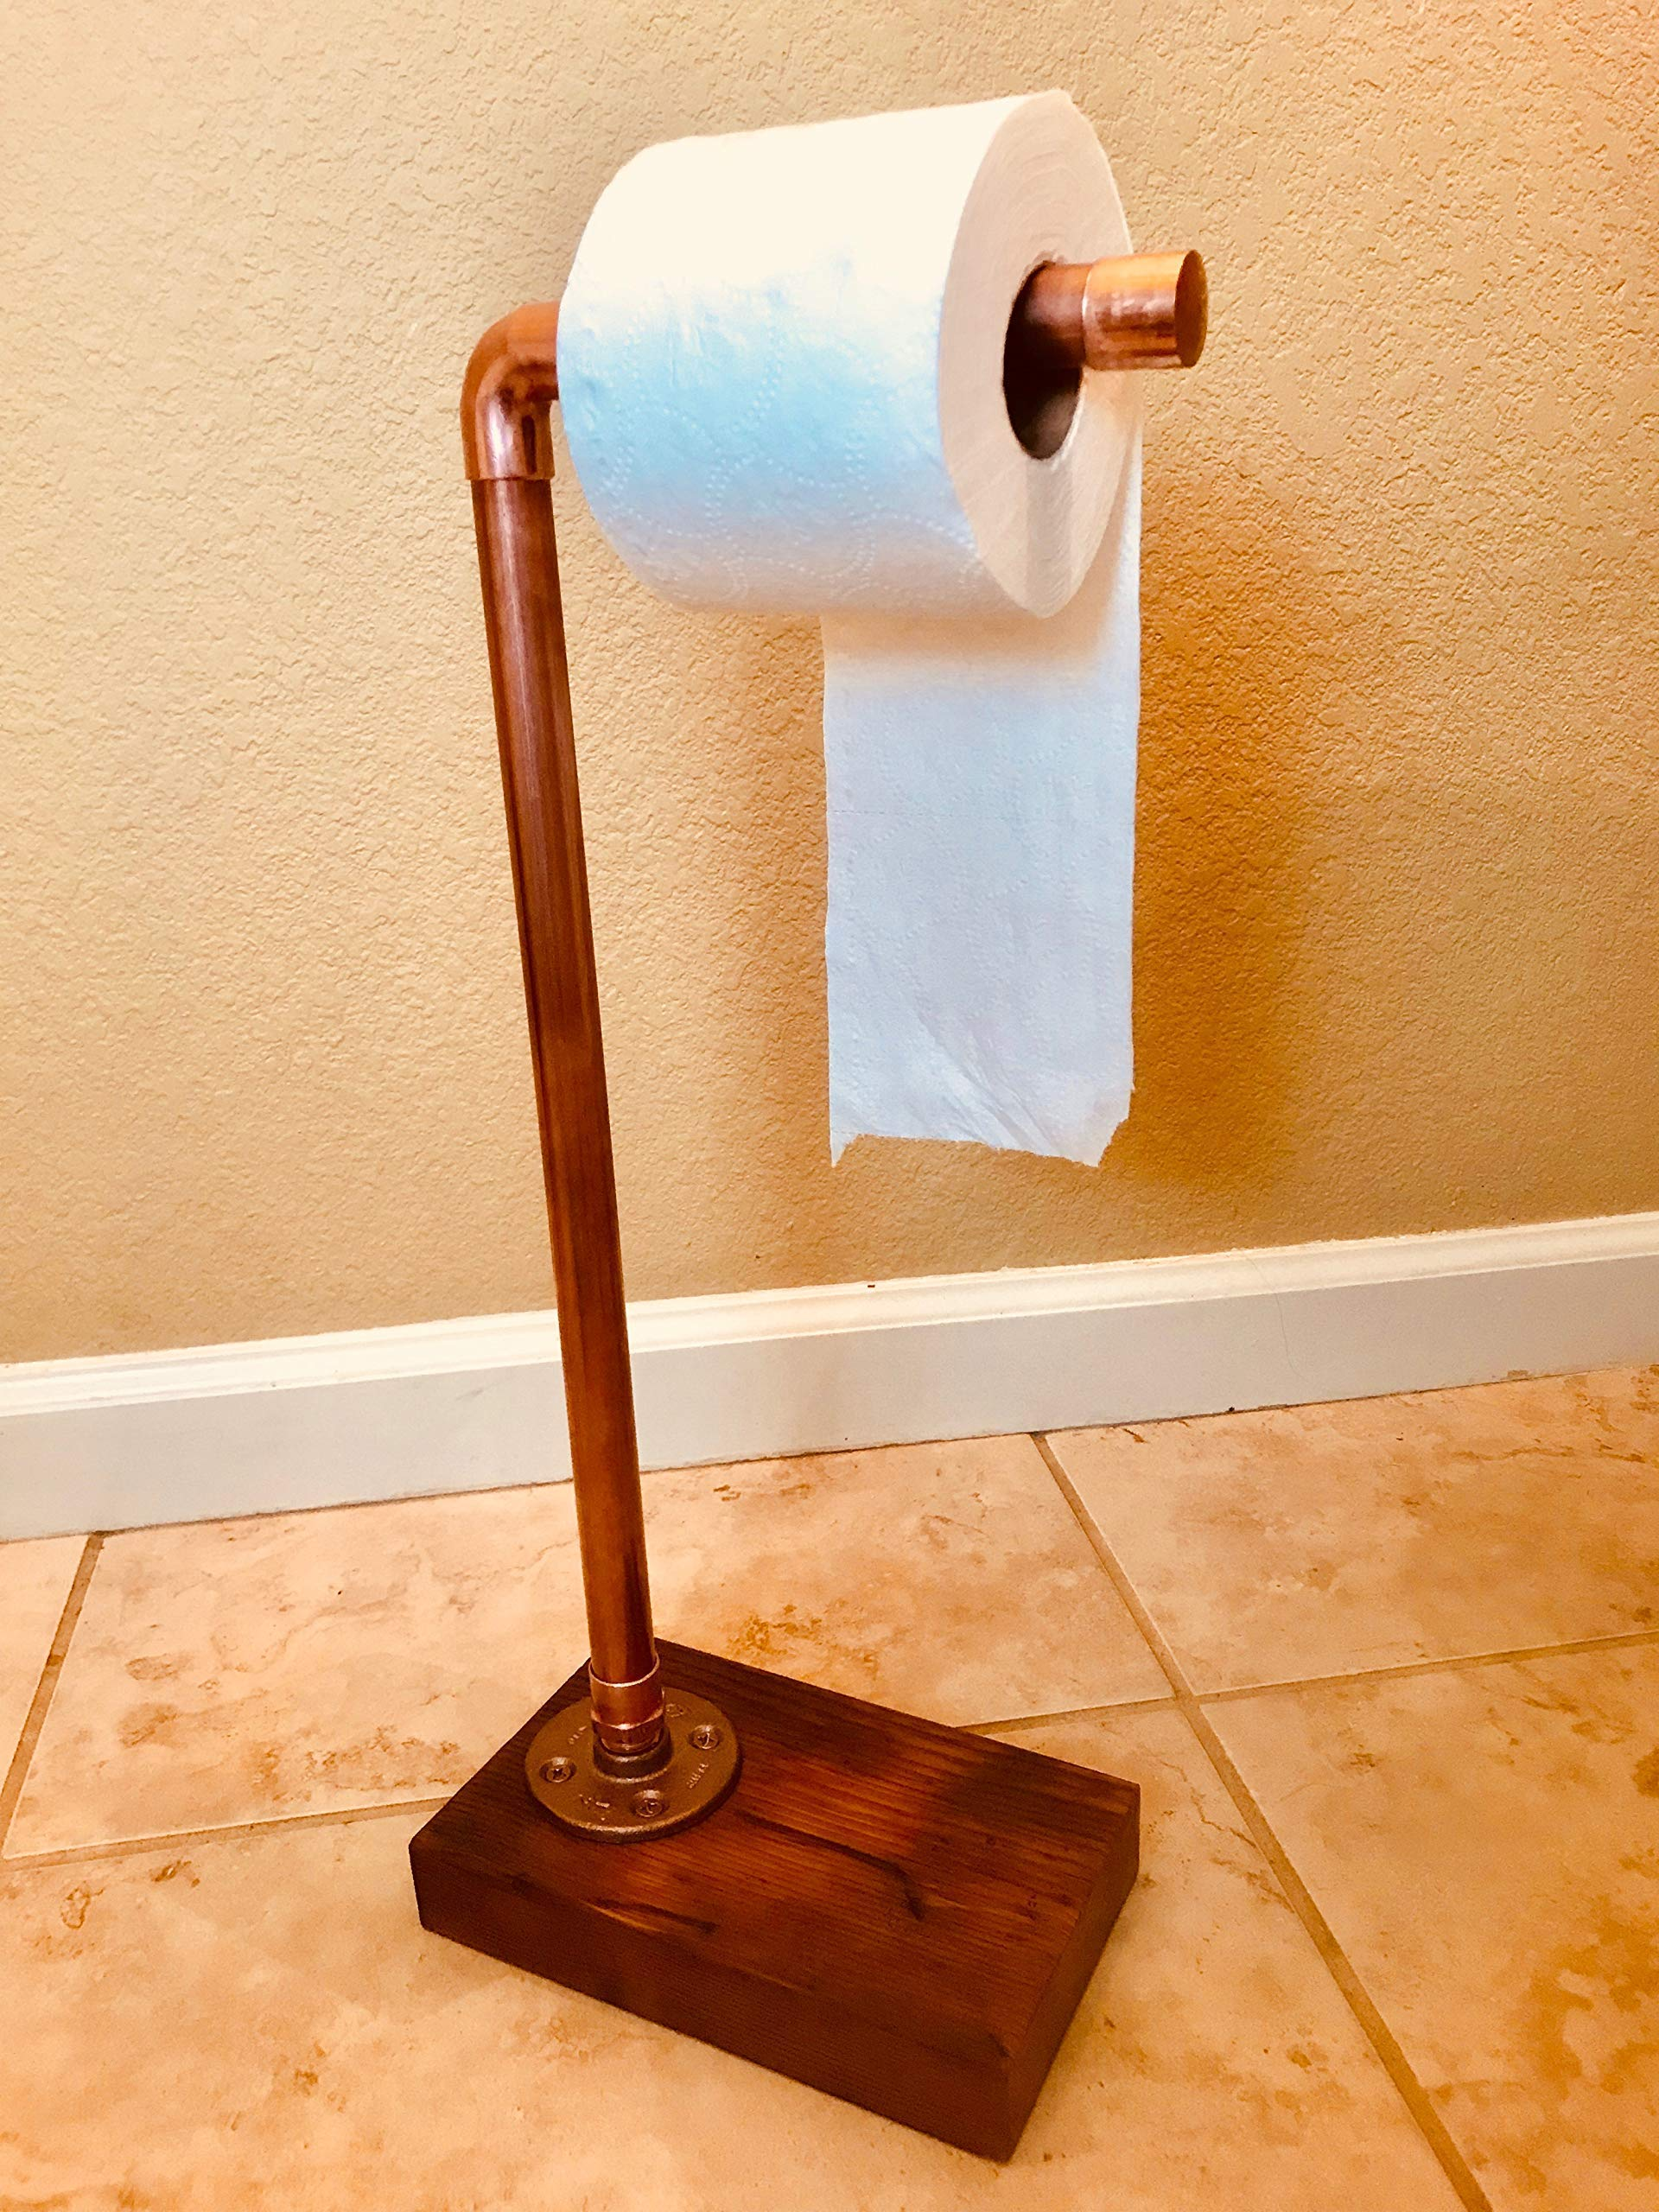 Industrial Copper Toilet Paper Stand Holder Rustic Bathroom Accessory Copper Pipe, Wood, industrial décor, bathroom décor home